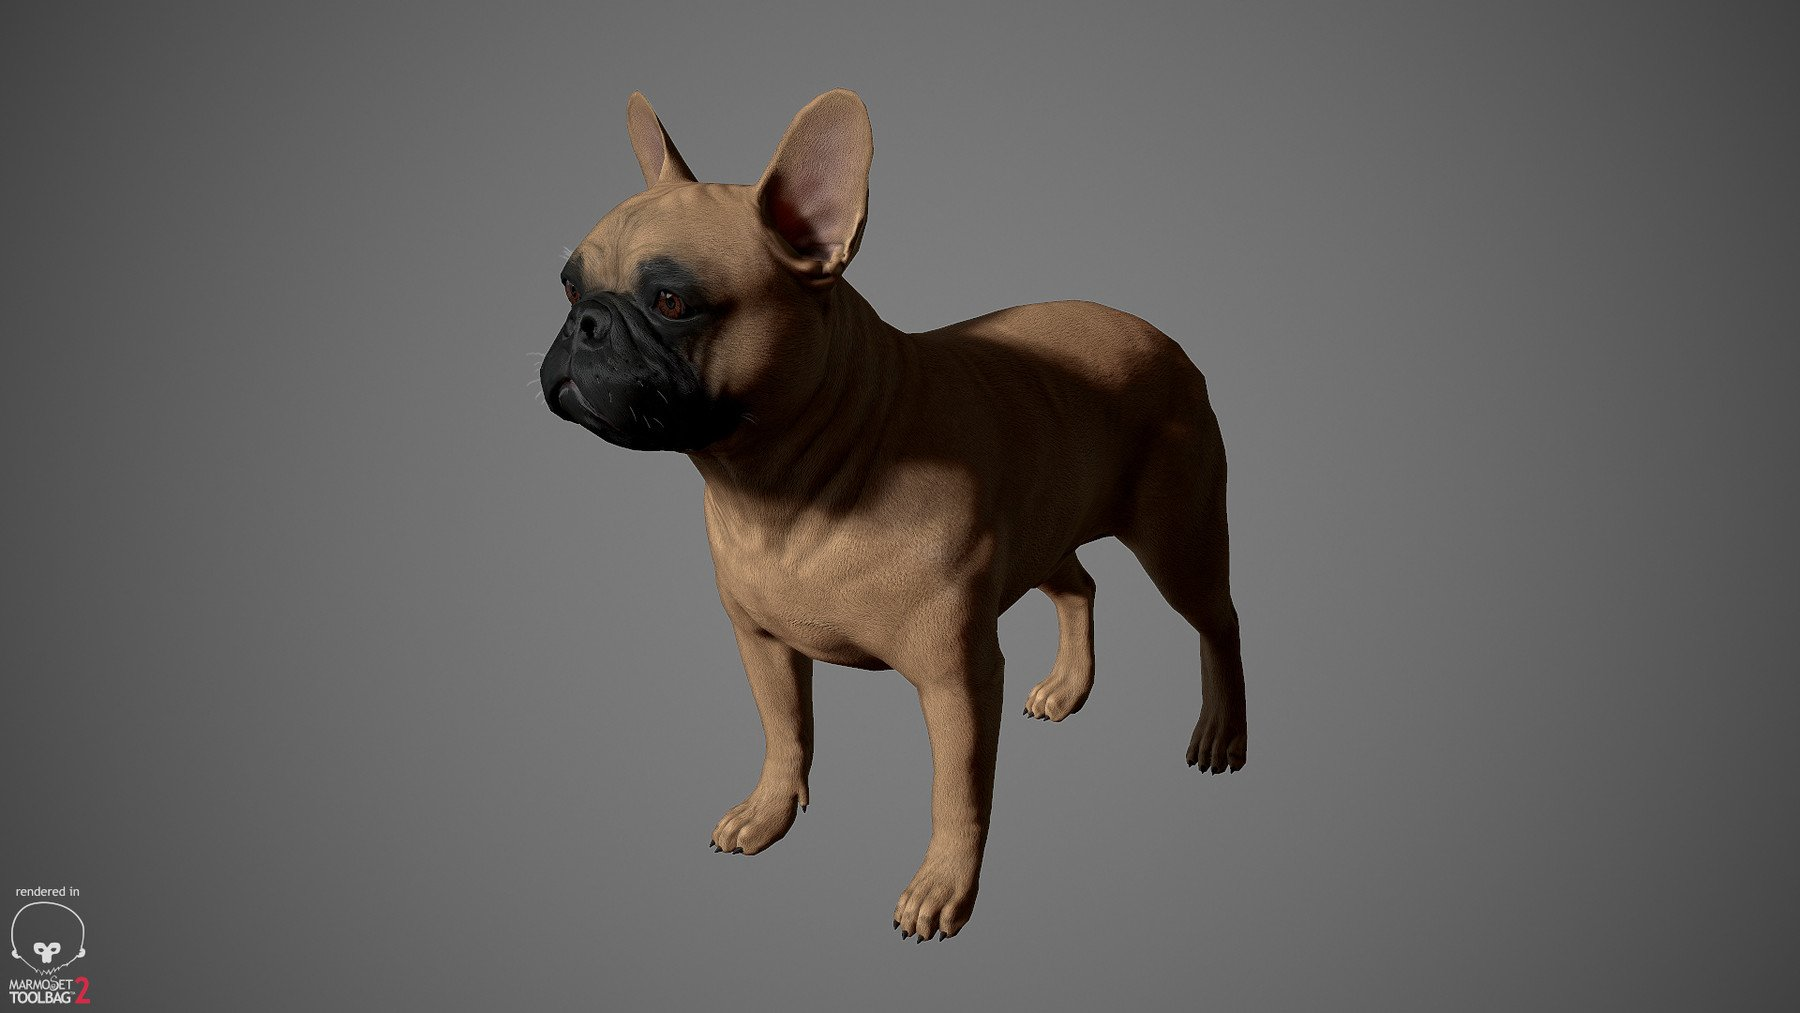 Frenchbulldog by alexlashko marmoset 20